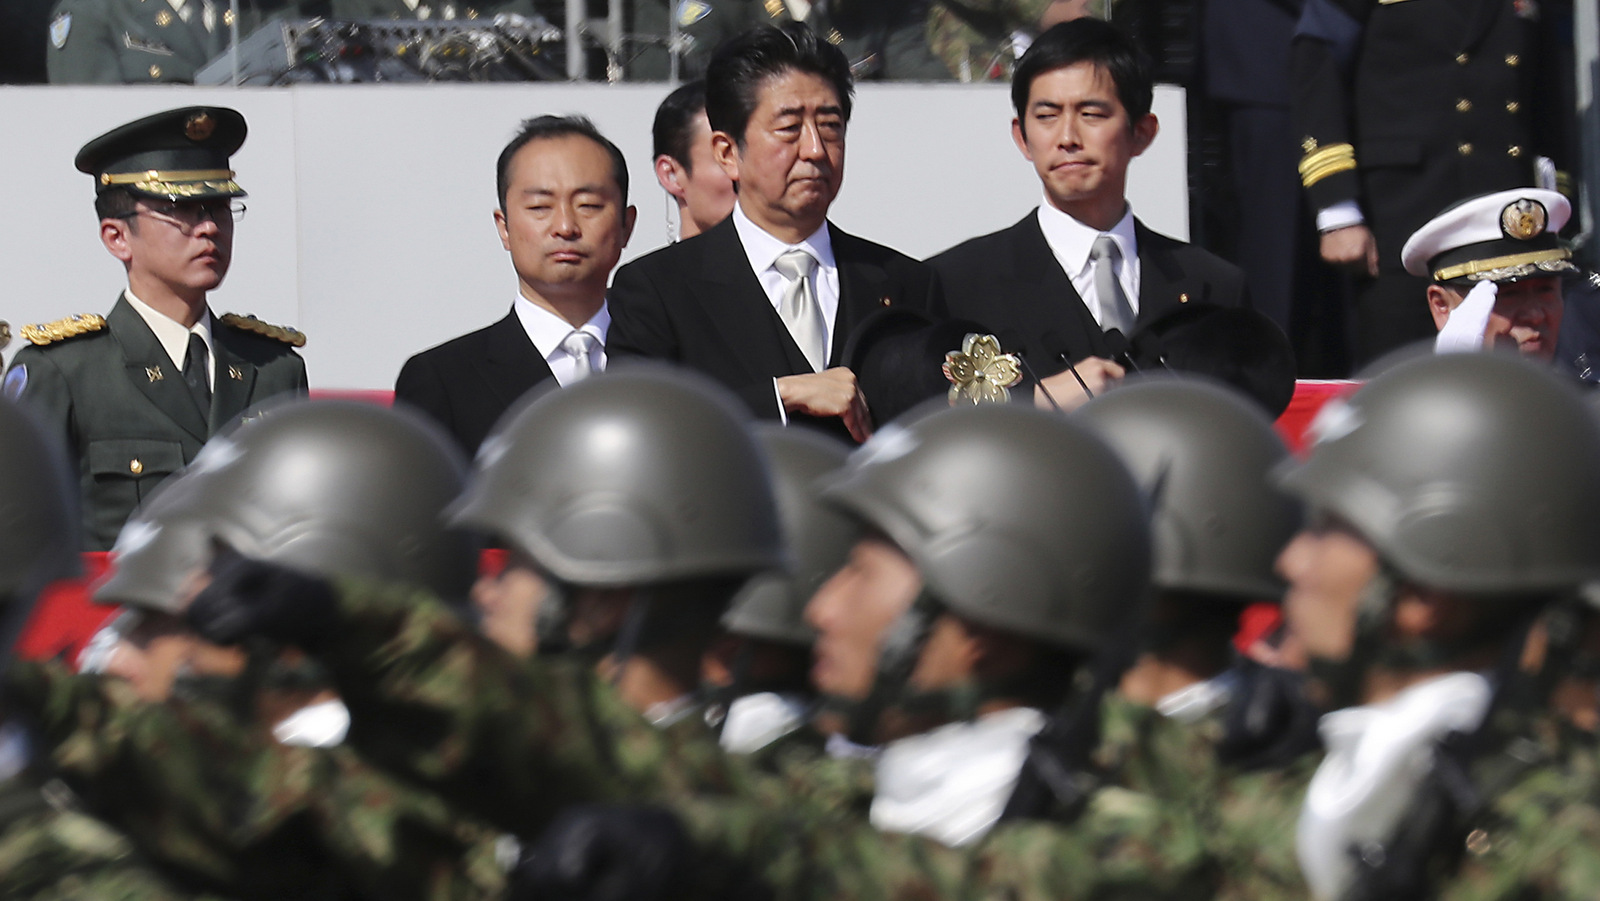 Japanese Prime Minister Shinzo Abe, center, reviews members of Japan Self-Defense Forces during a parade of the Self-Defense Forces Day at Asaka Base in Asaka, north of Tokyo. (AP/Eugene Hoshiko)